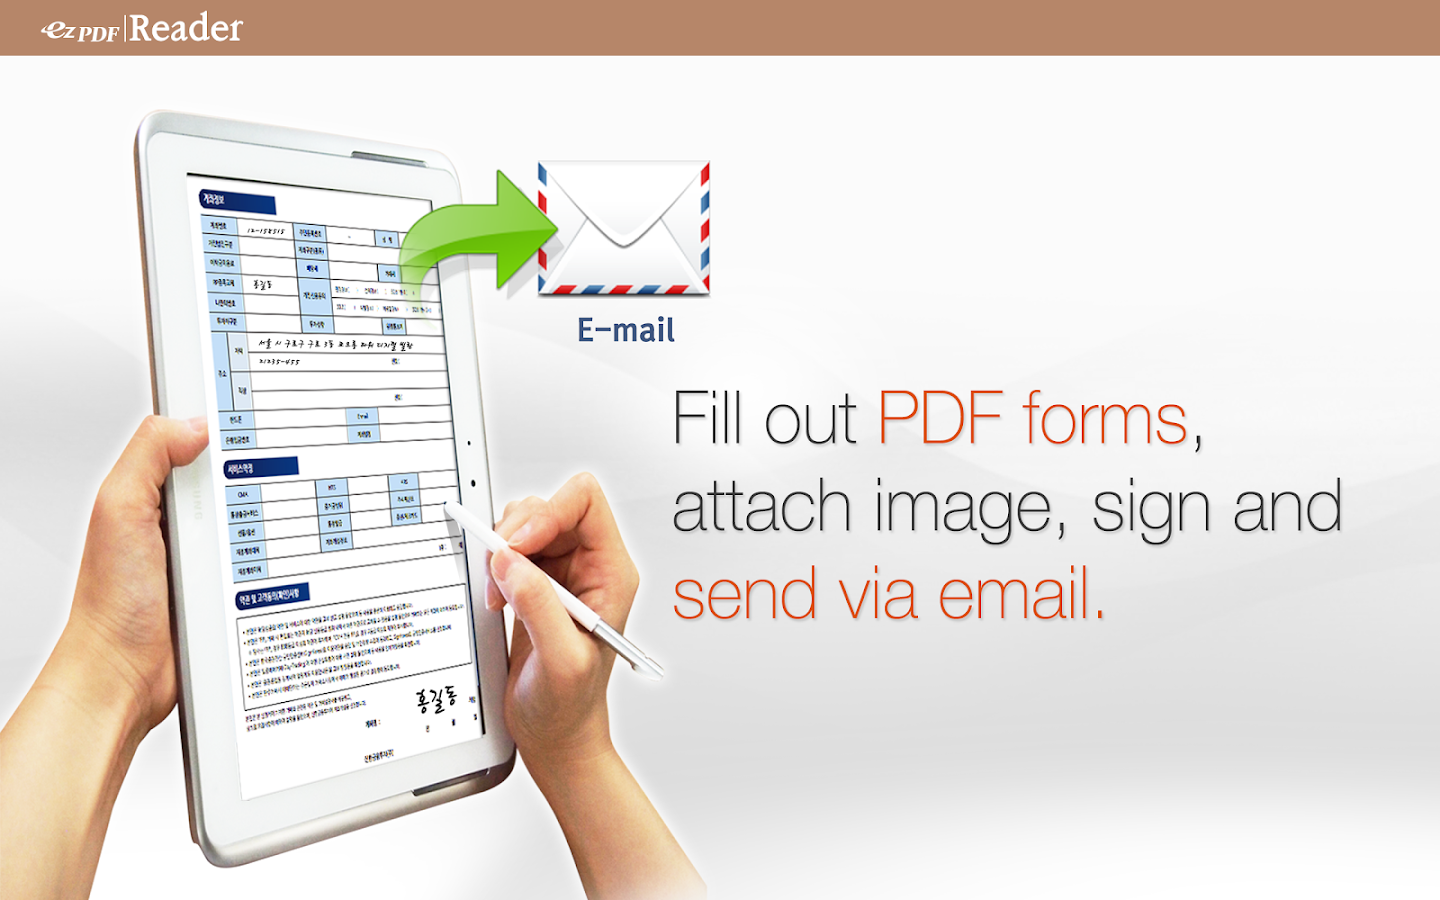 ezPDF Reader PDF Annotate Form Screenshot 8